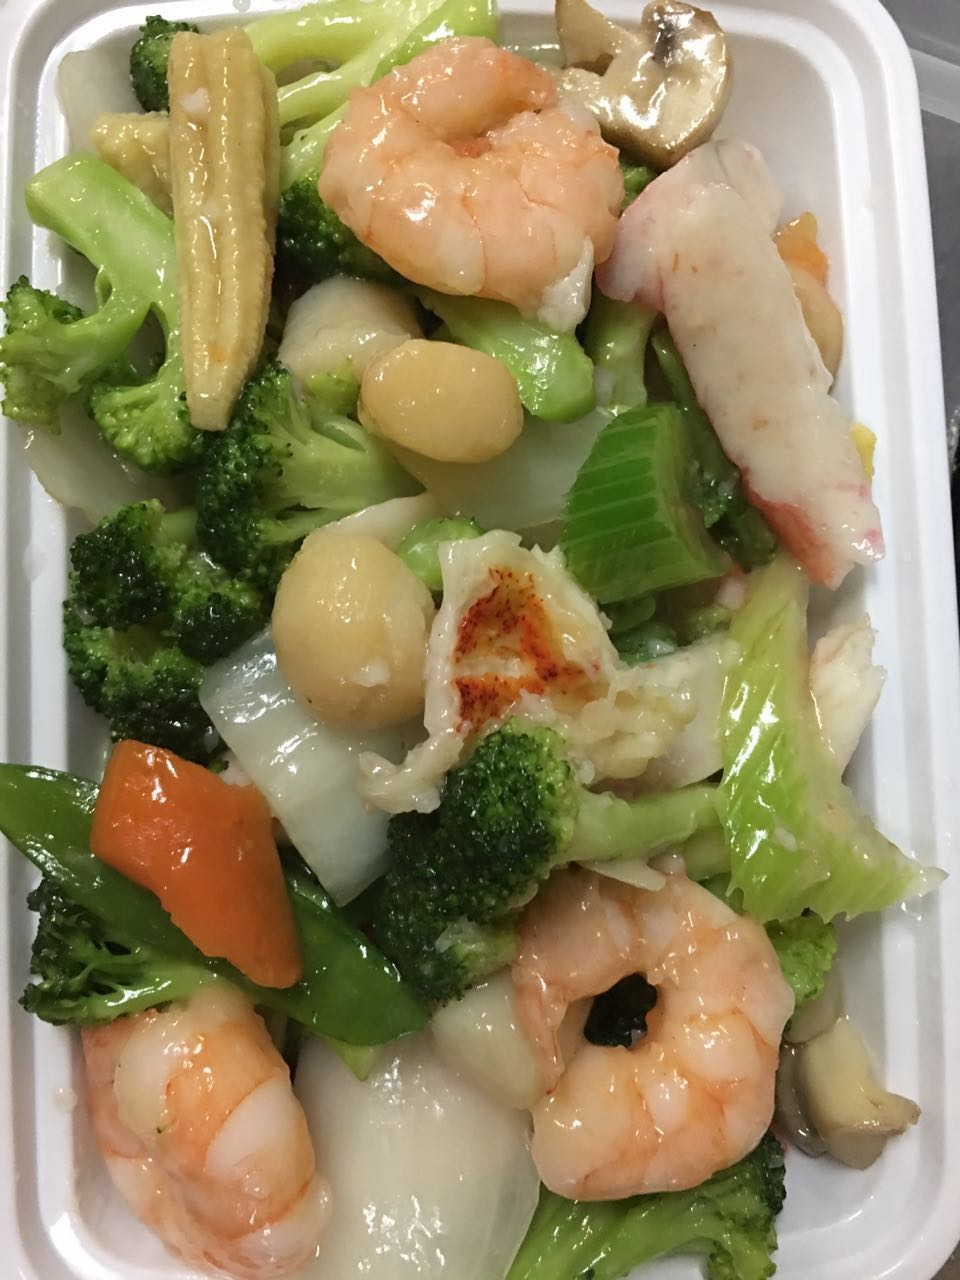 S 1. Seafood Combination Image